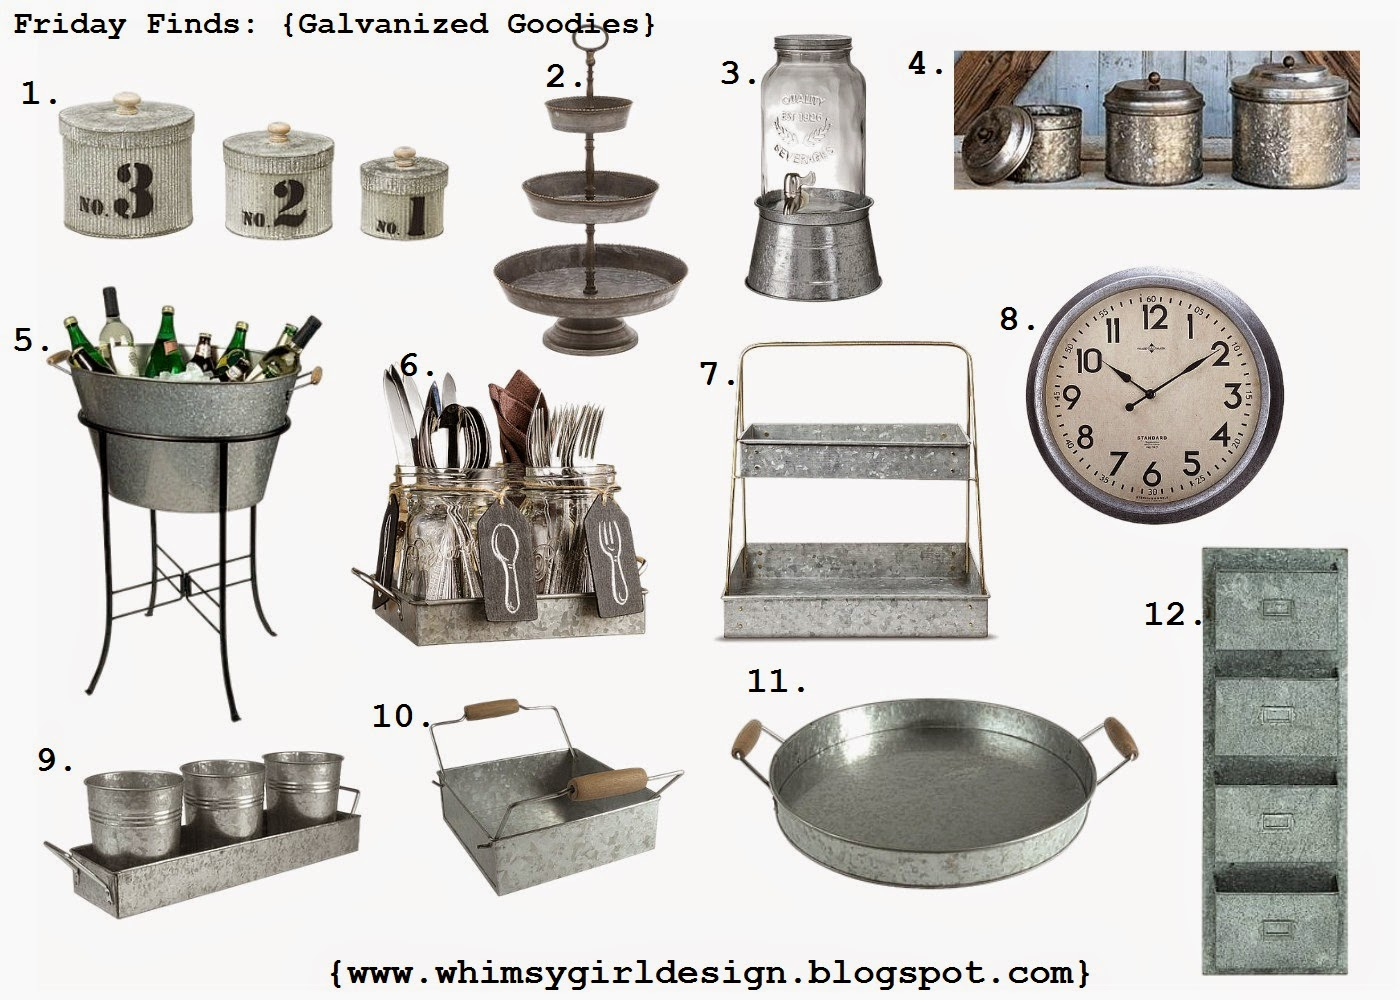 whimsy girl Friday Finds Galvanized Goodies